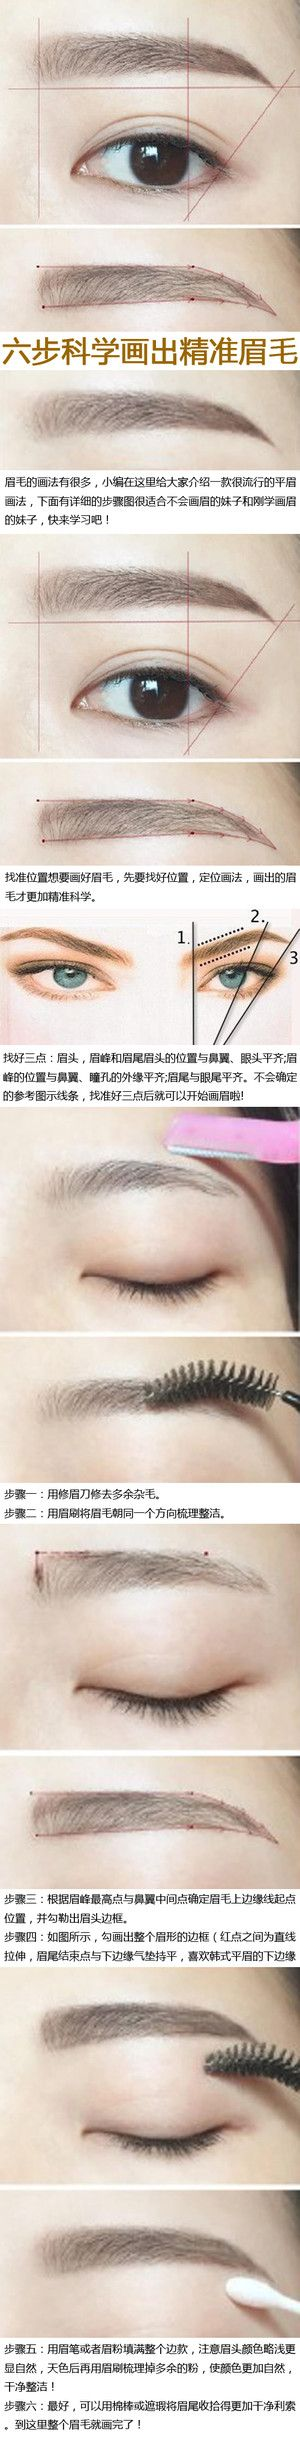 how to use eyebrow shaper. eyebrow shaping tutorial how to use shaper